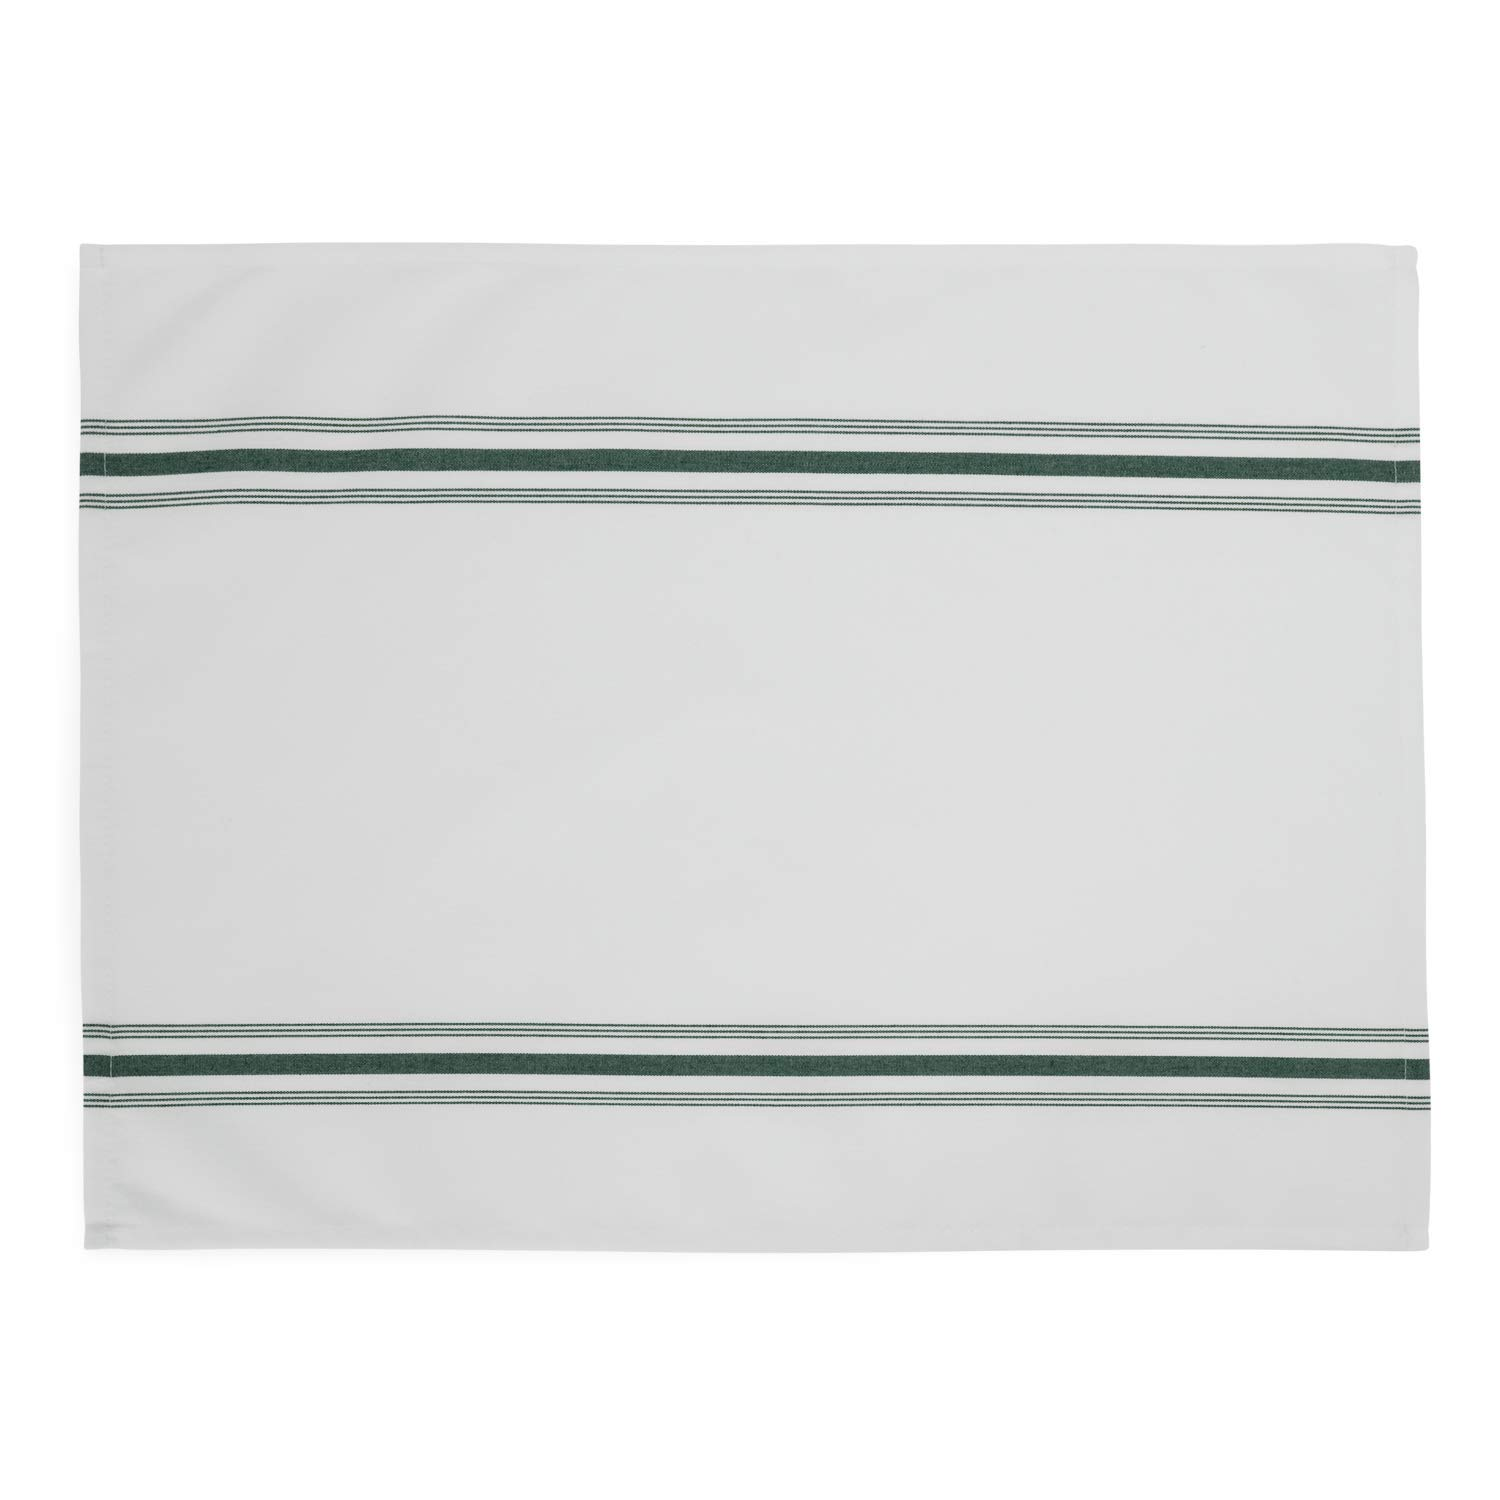 100 Wholesale Cloth Dinner Bistro Napkins in Bulk Scotchgard soil release finish for durability and easy care 18 x 22 Inches with French stripes Professional restaurant quality towels